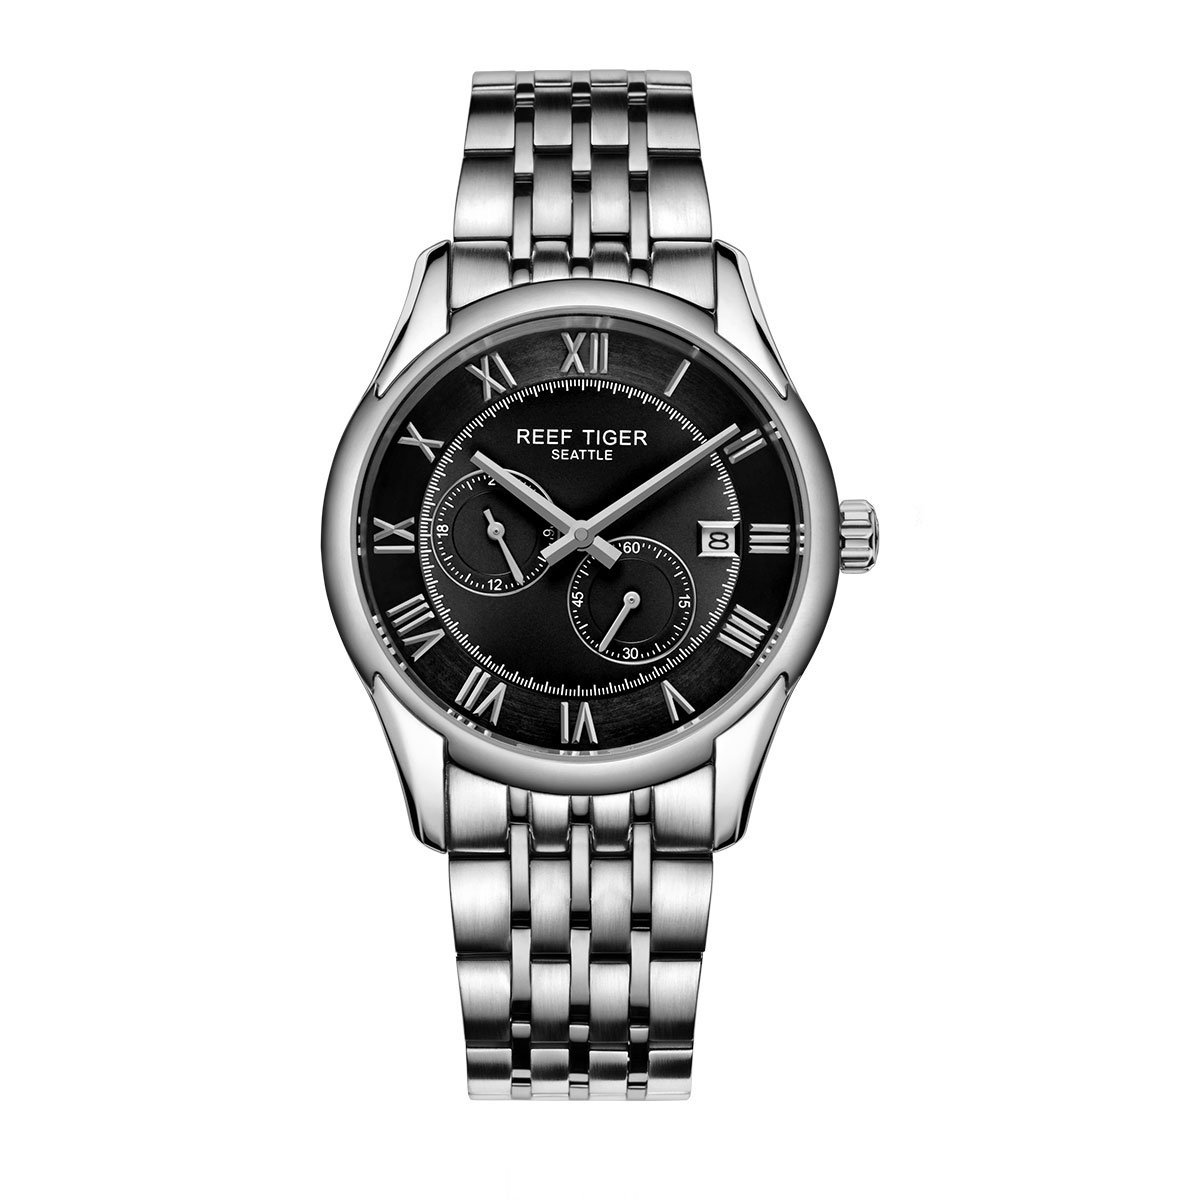 Reef Tiger Business Watches Date Four Hands Stainless Steel Black Dial Watch RGA165